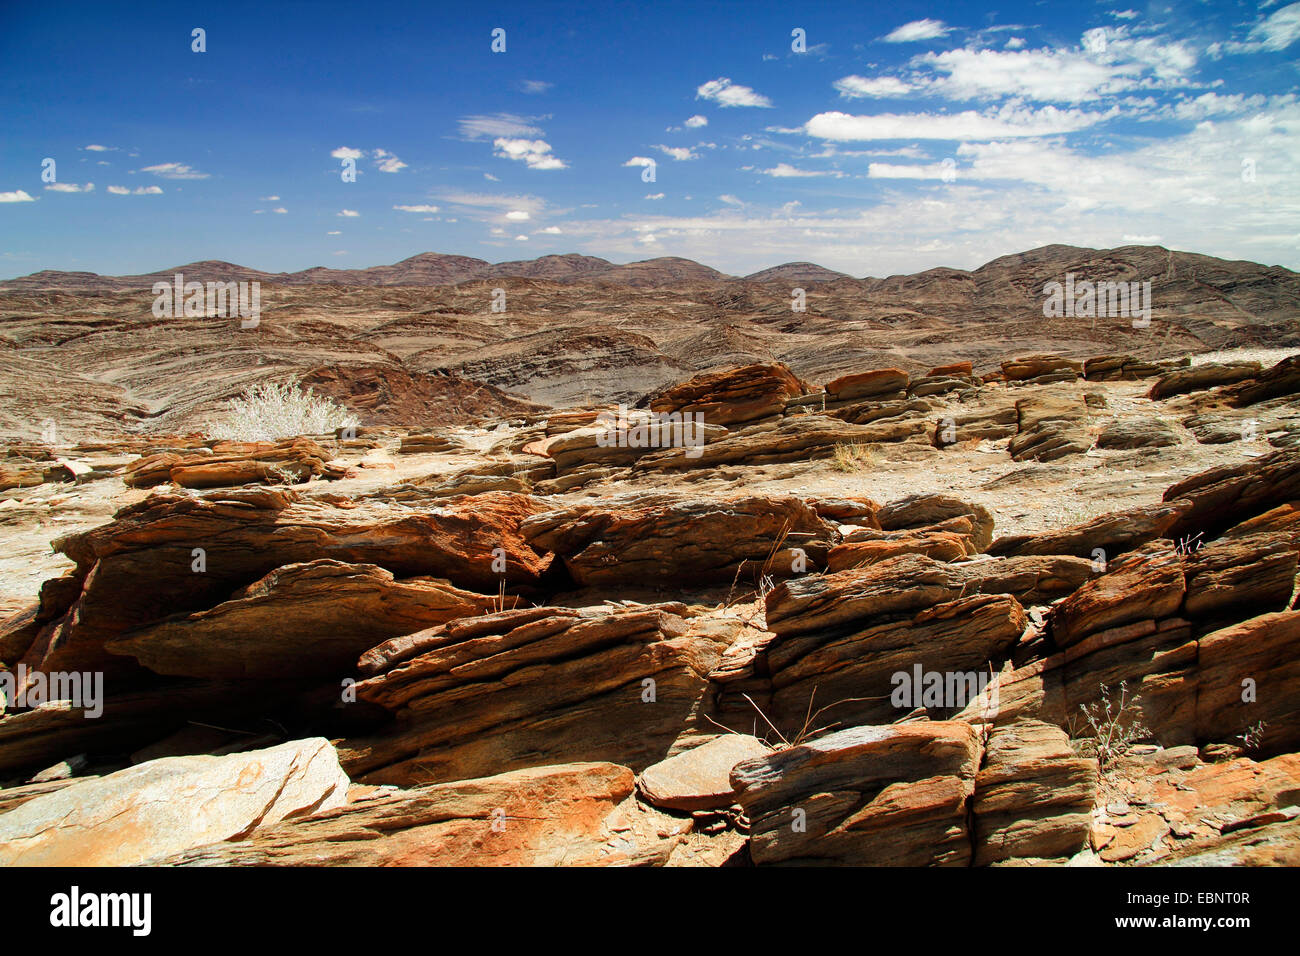 Paysage des montagnes Rocheuses, la Namibie, le Parc National Namib Naukluft, Canyon Kuiseb Photo Stock